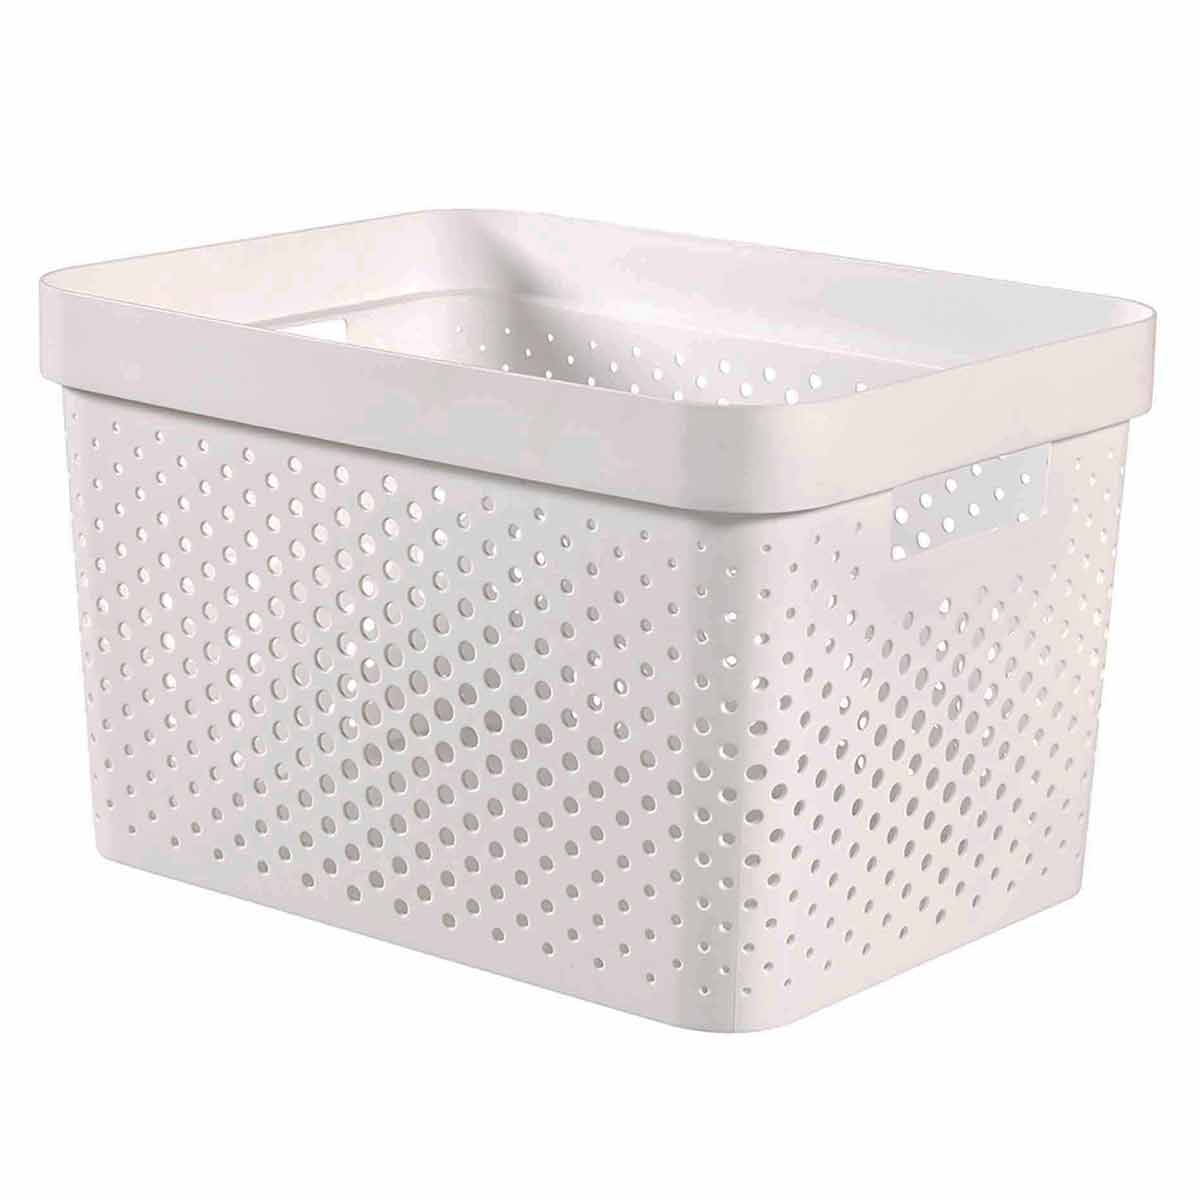 Curver Infinity Recycled Storage Basket 17 Litre, White